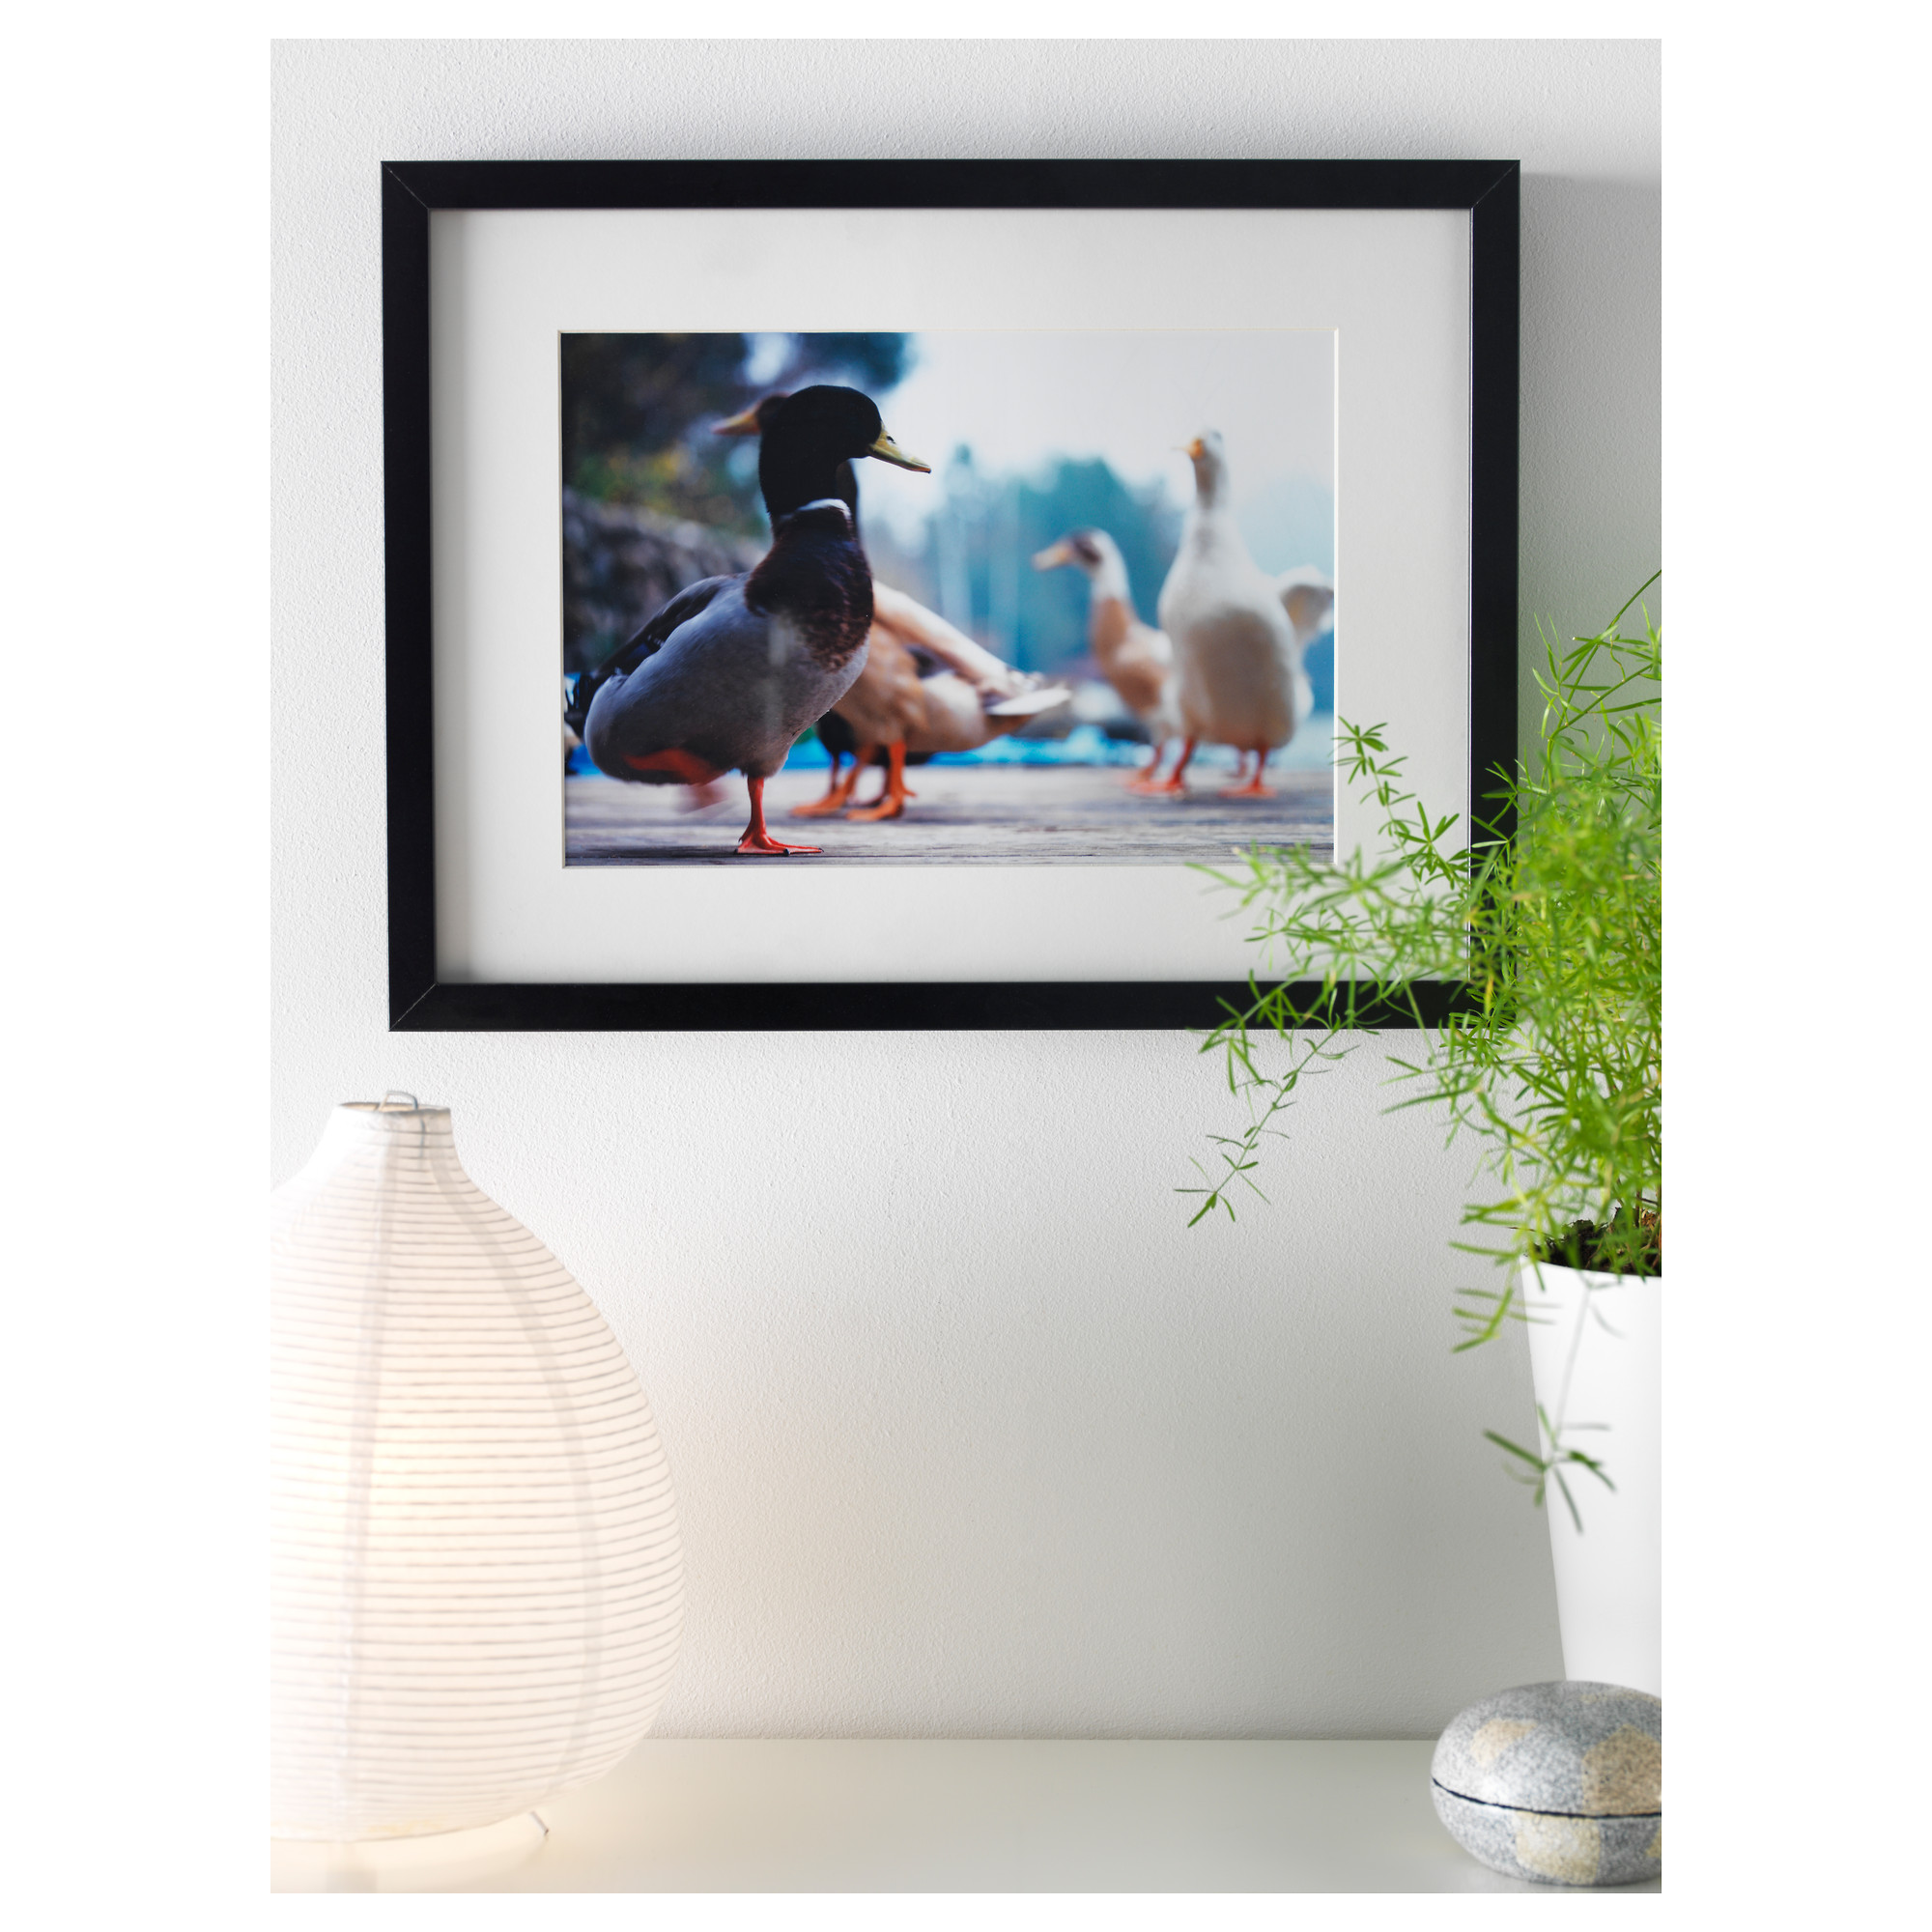 Attractive 13x19 Frame Ikea Mold - Picture Frame Ideas ...